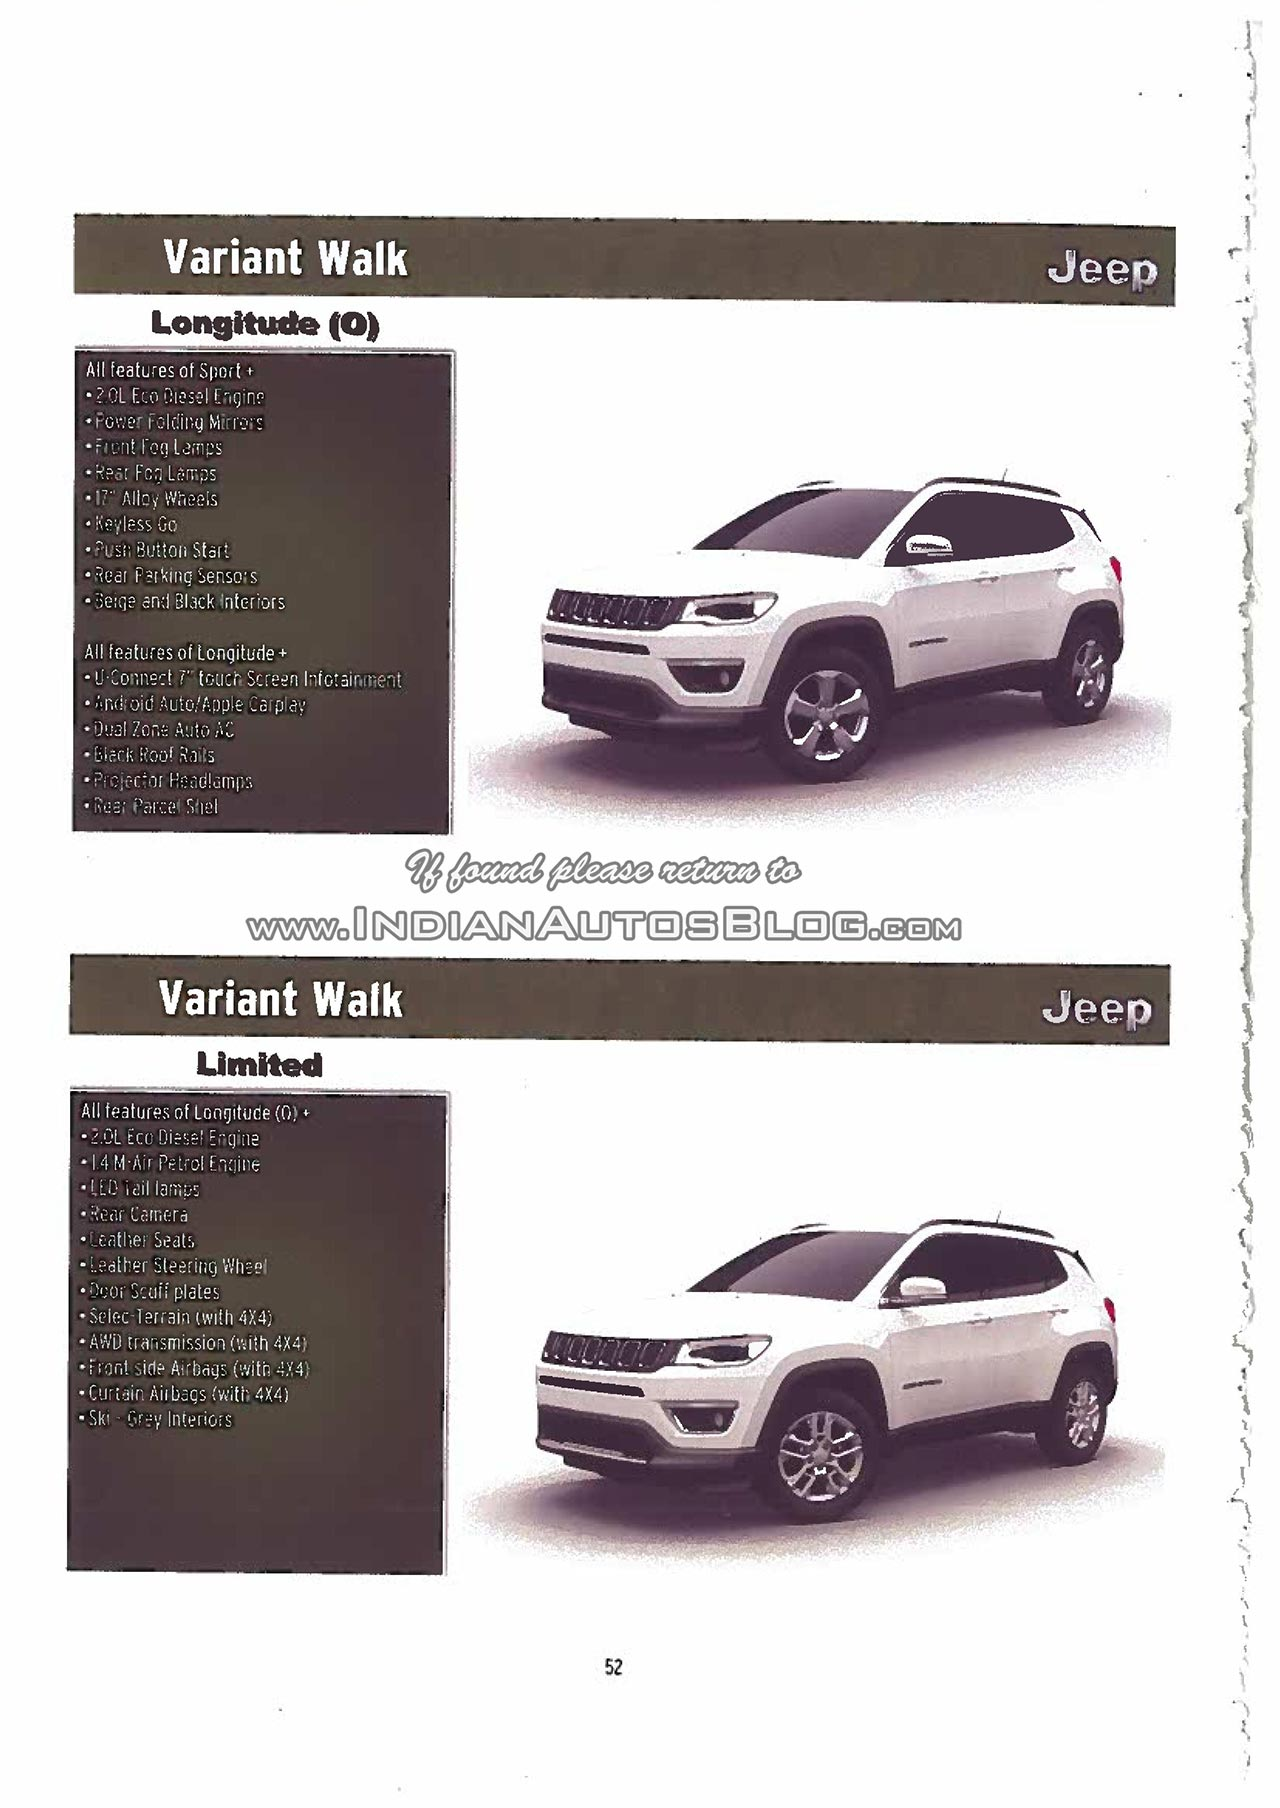 2017 Jeep Compass equipment higlights third image